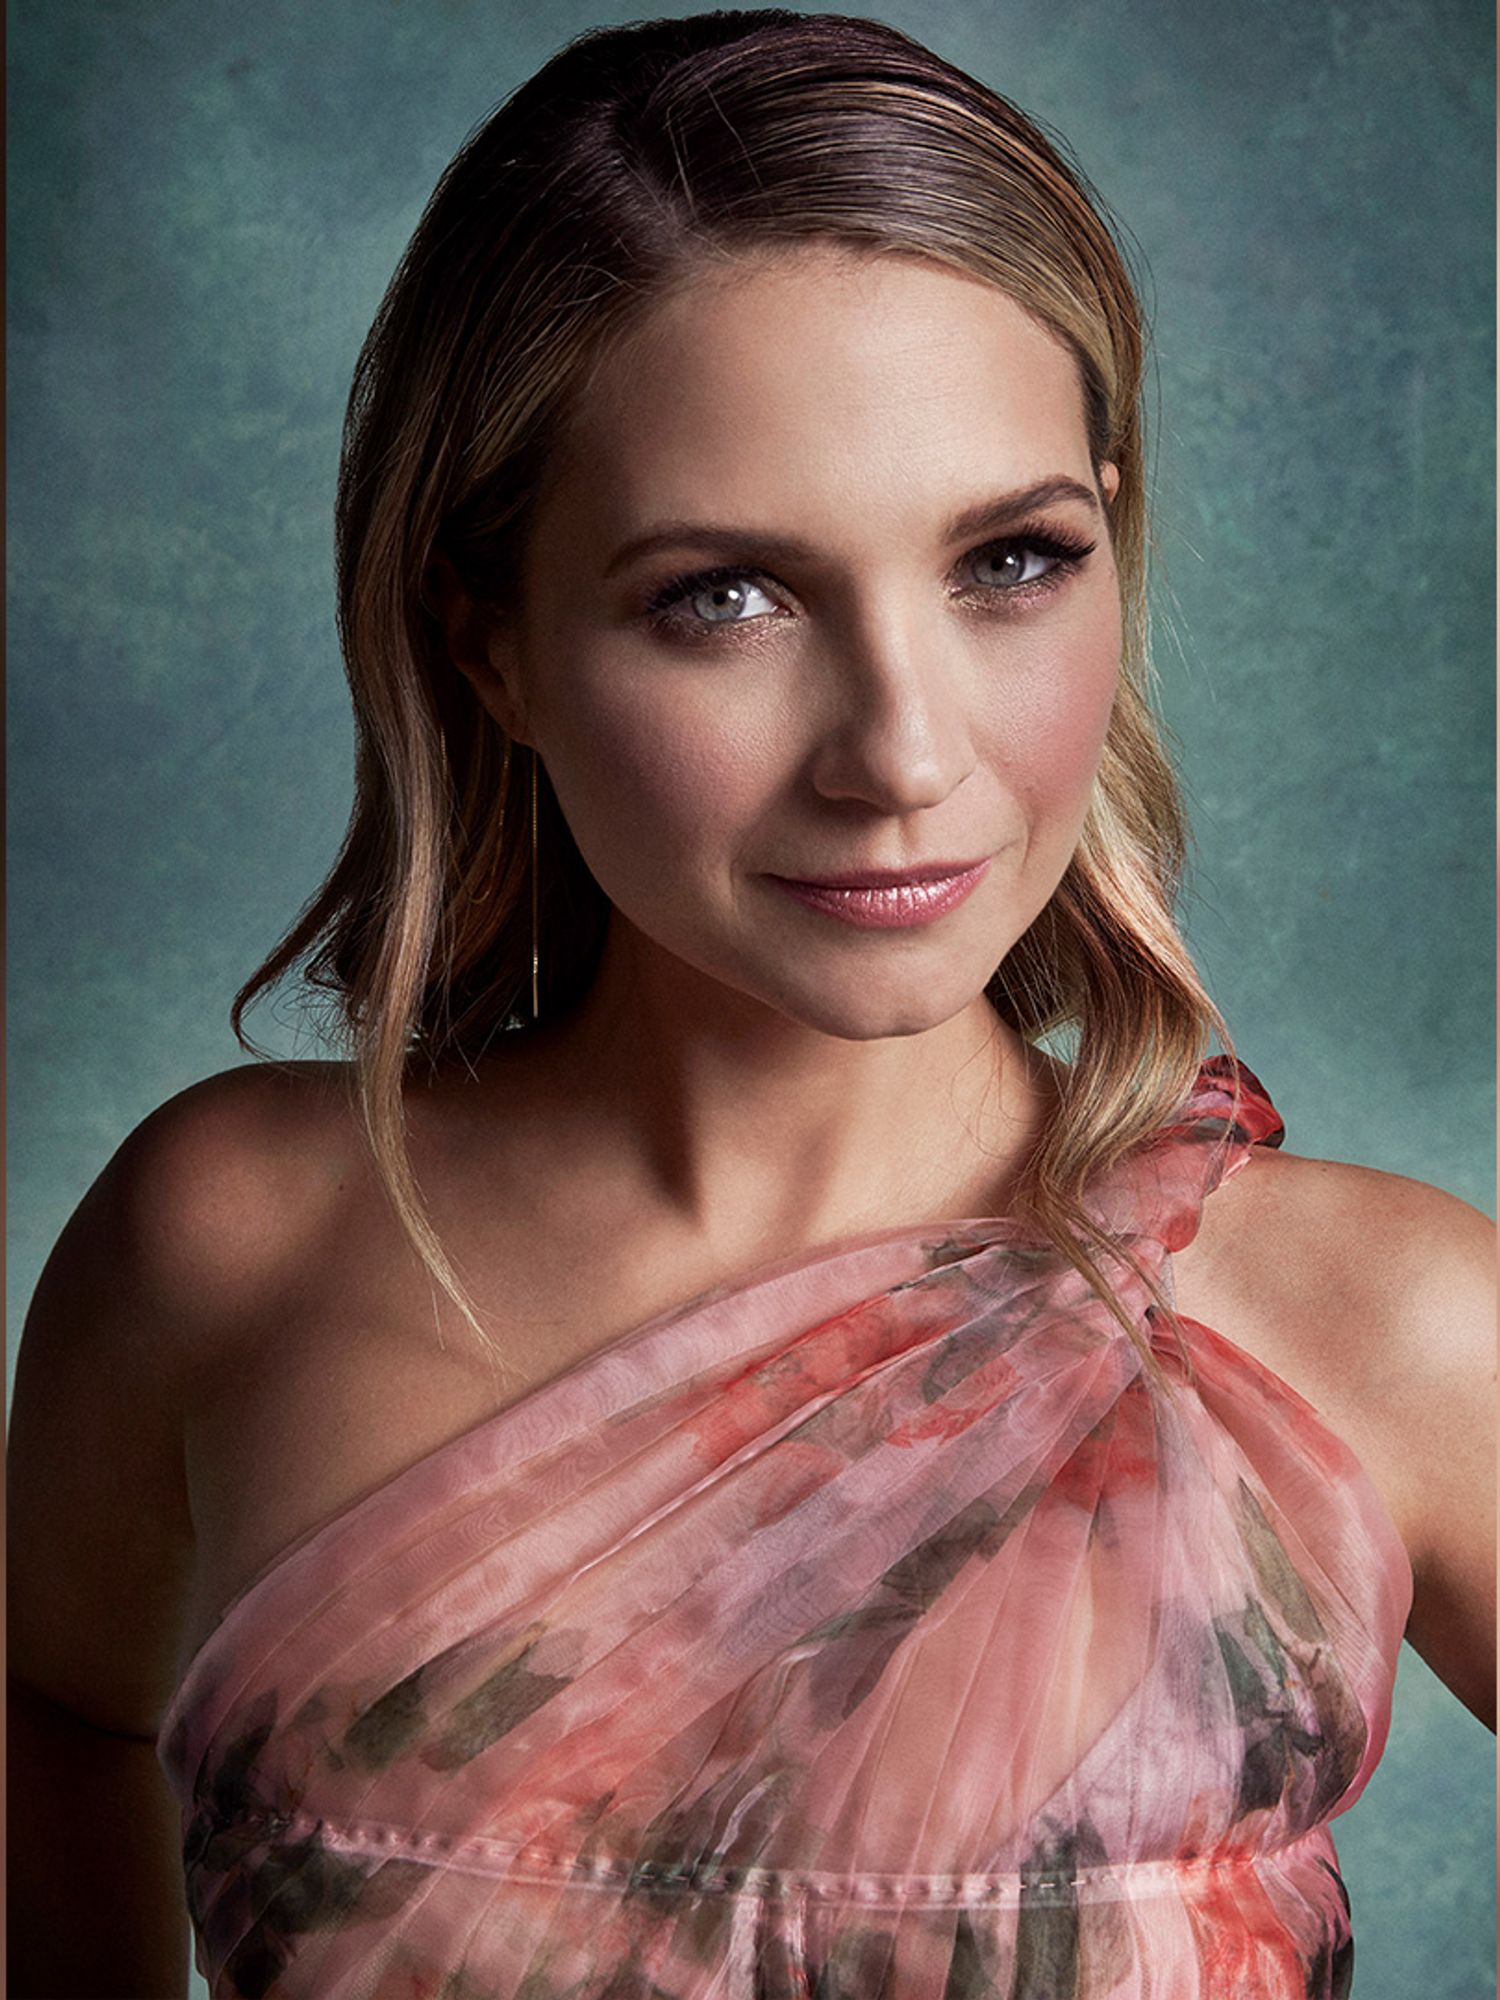 Vanessa Ray natural makeup pink floral dress